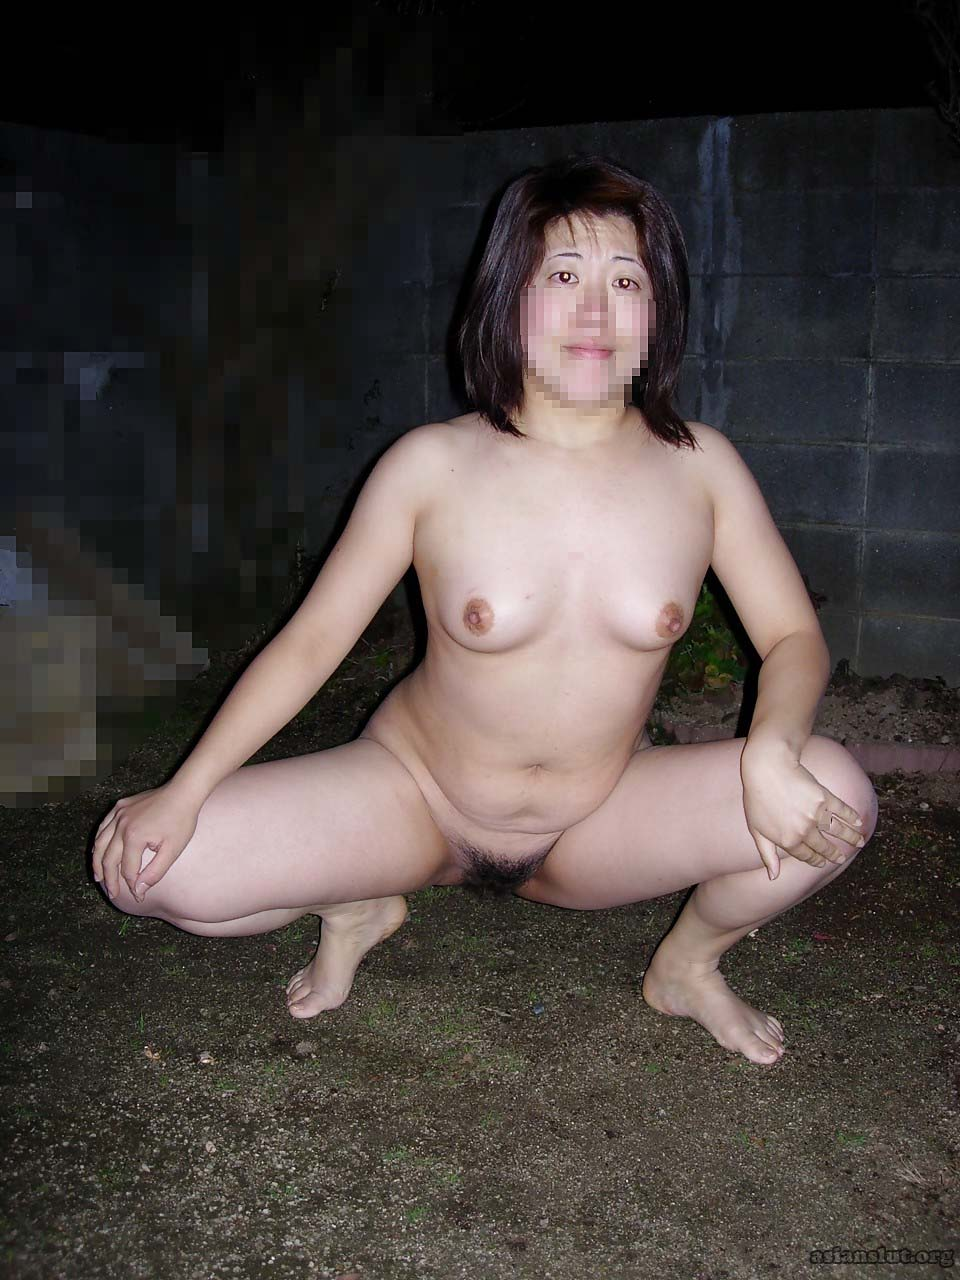 hot Japanese wife's loose vagina ,stinky anus and sex photos leaked